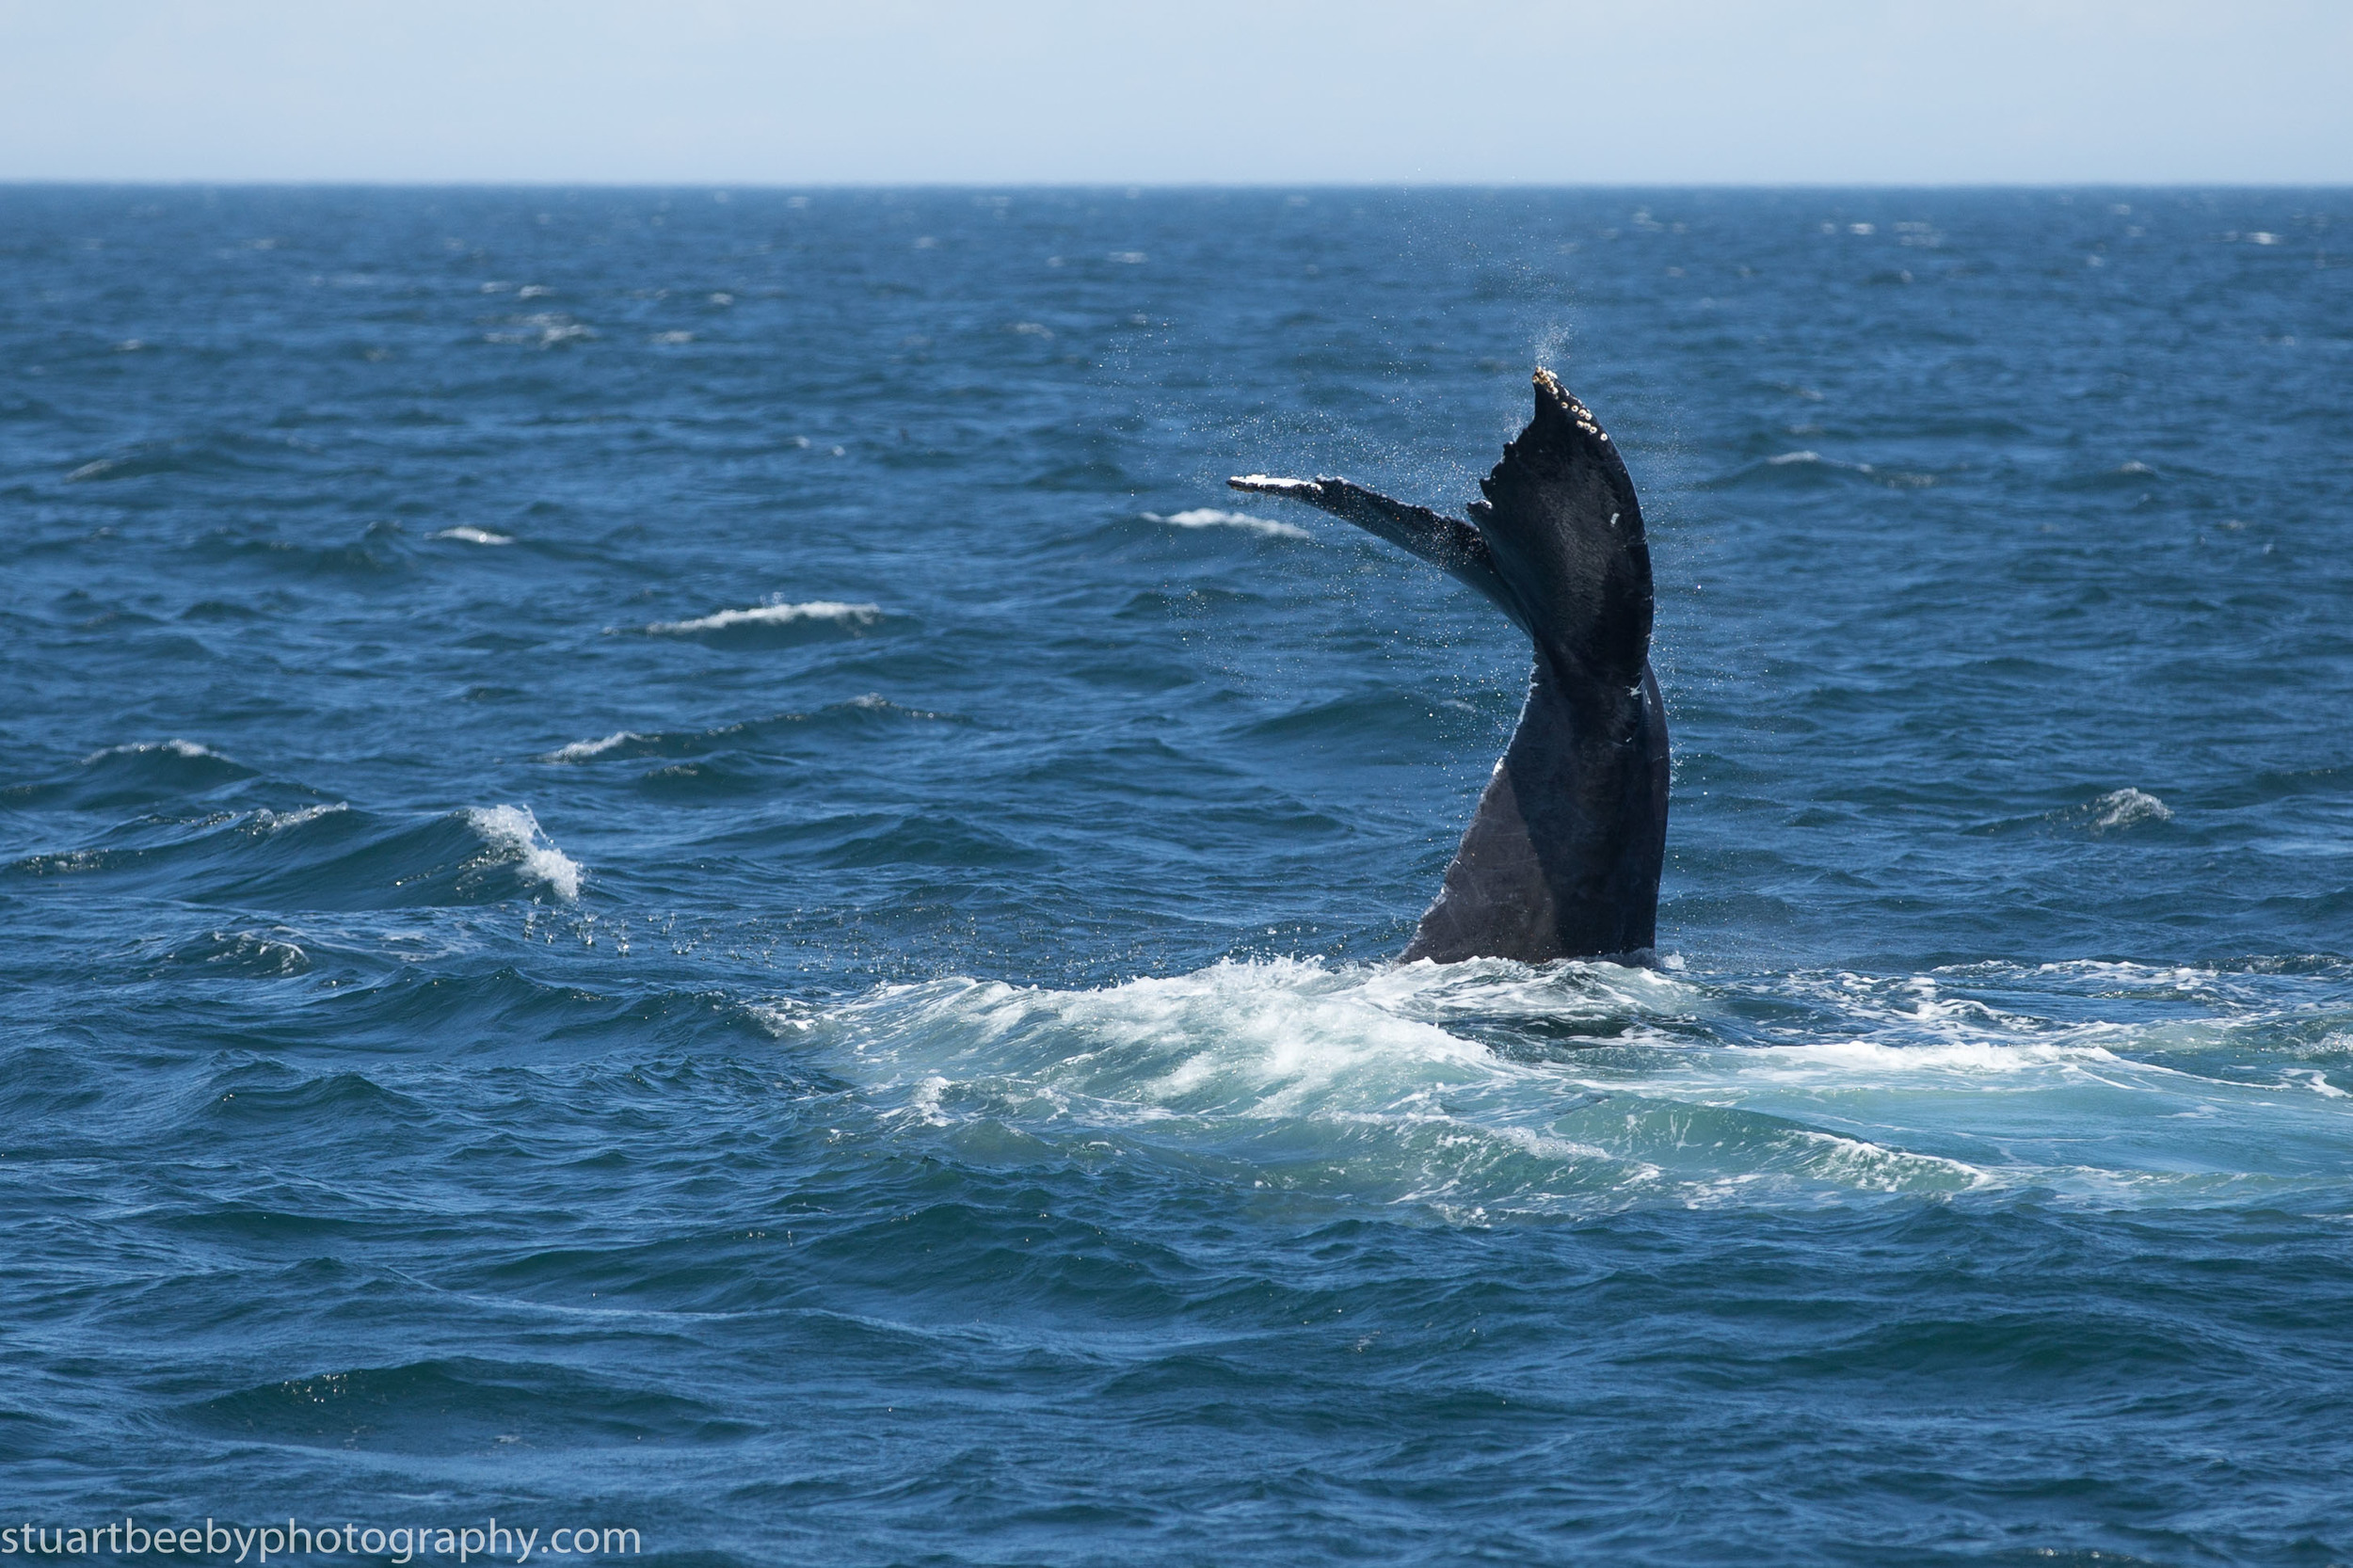 Whales put on a show